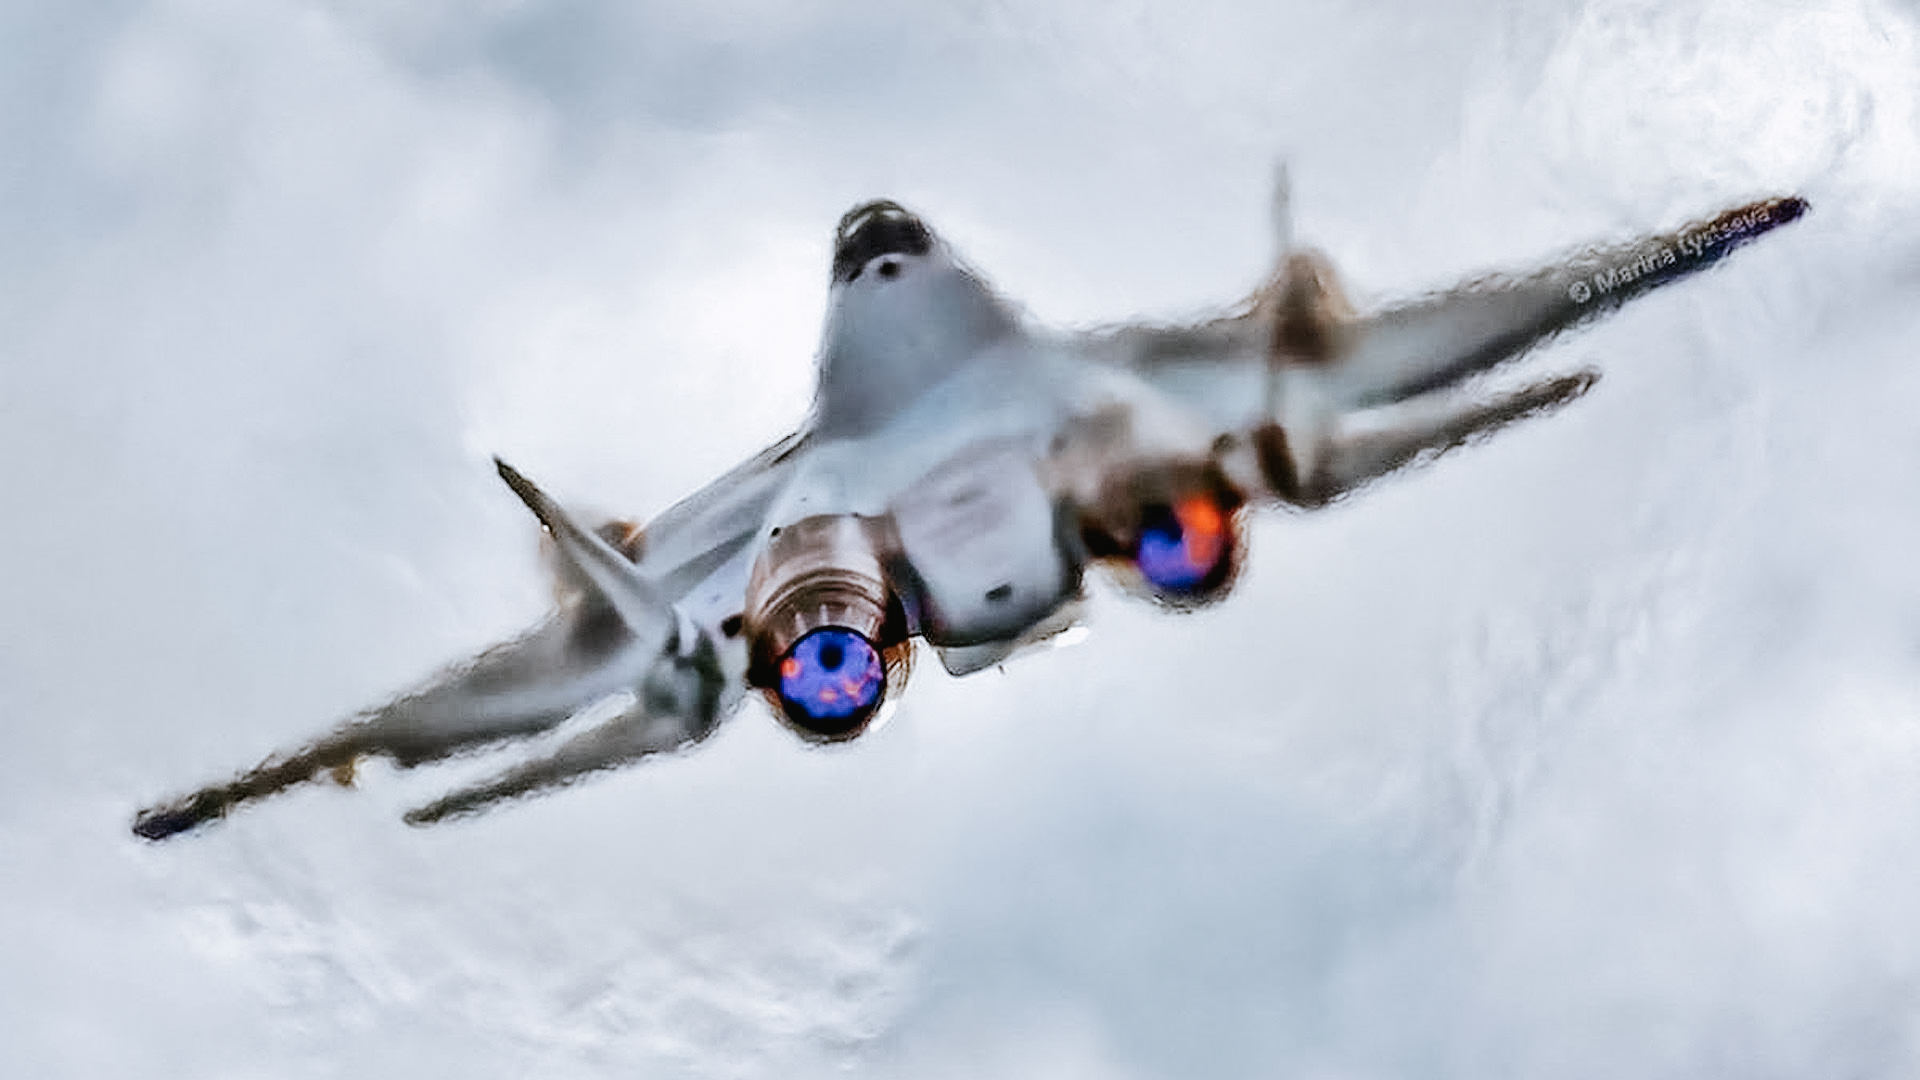 Su-57 Stealth Fighter: News #7 - Page 16 Ew1MLC_WQAADV79?format=jpg&name=large